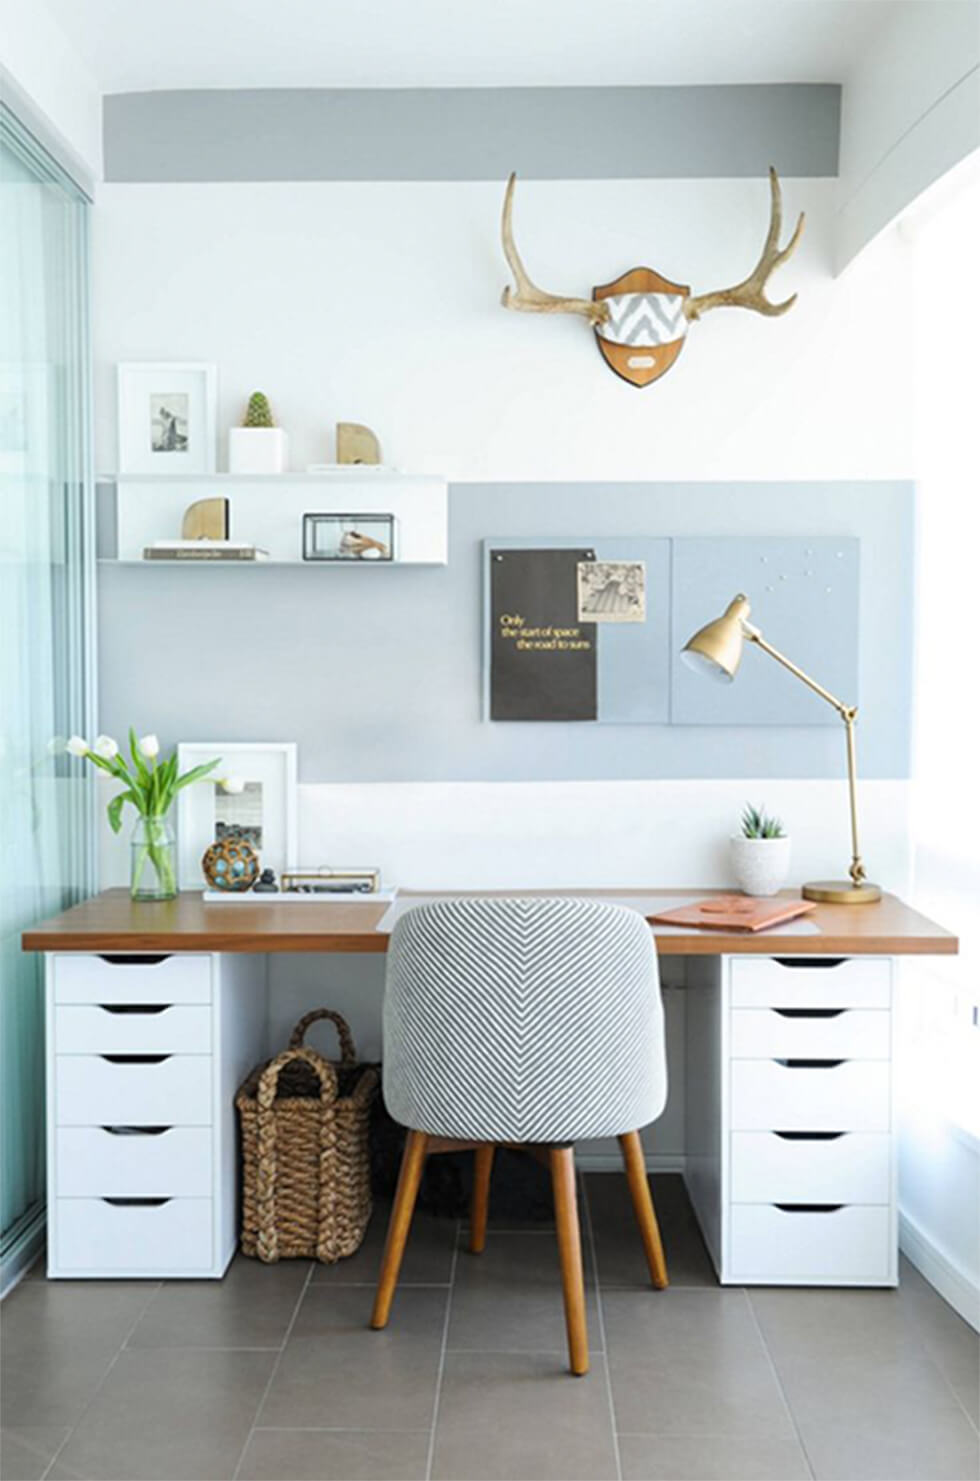 Home office with light blue walls, white walls and wooden accents